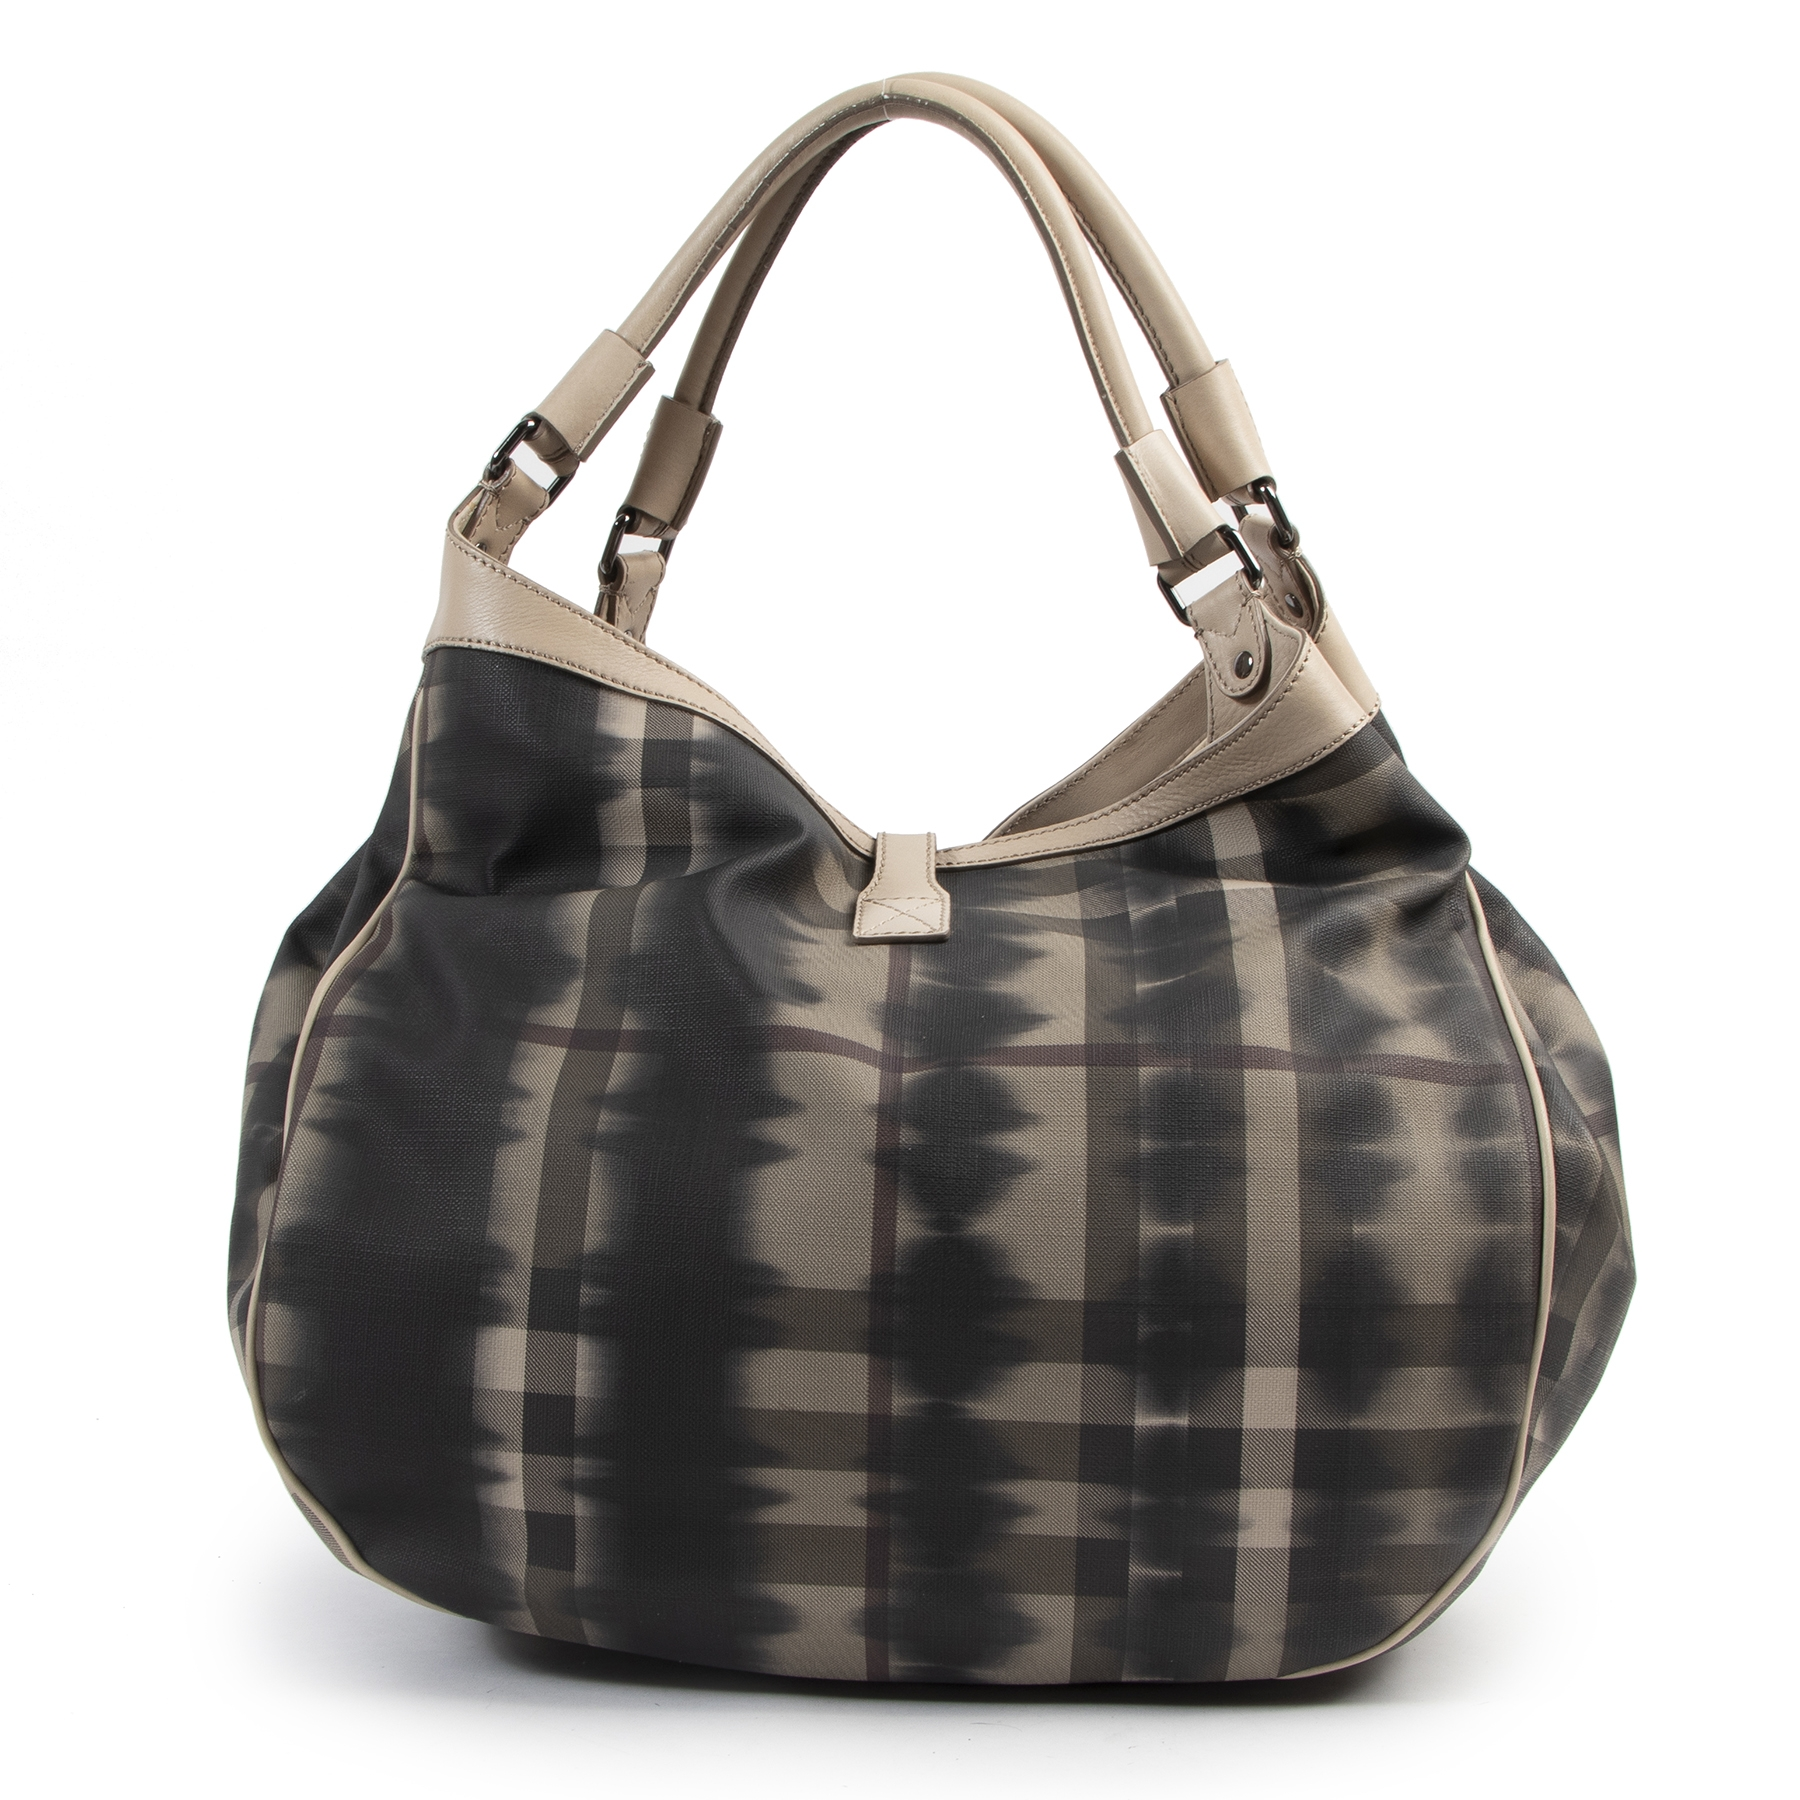 Authentic secondhand Burberry Check Canvas Oversized Tote Bag designer bags fashion luxury vintage webshop safe secure online shopping